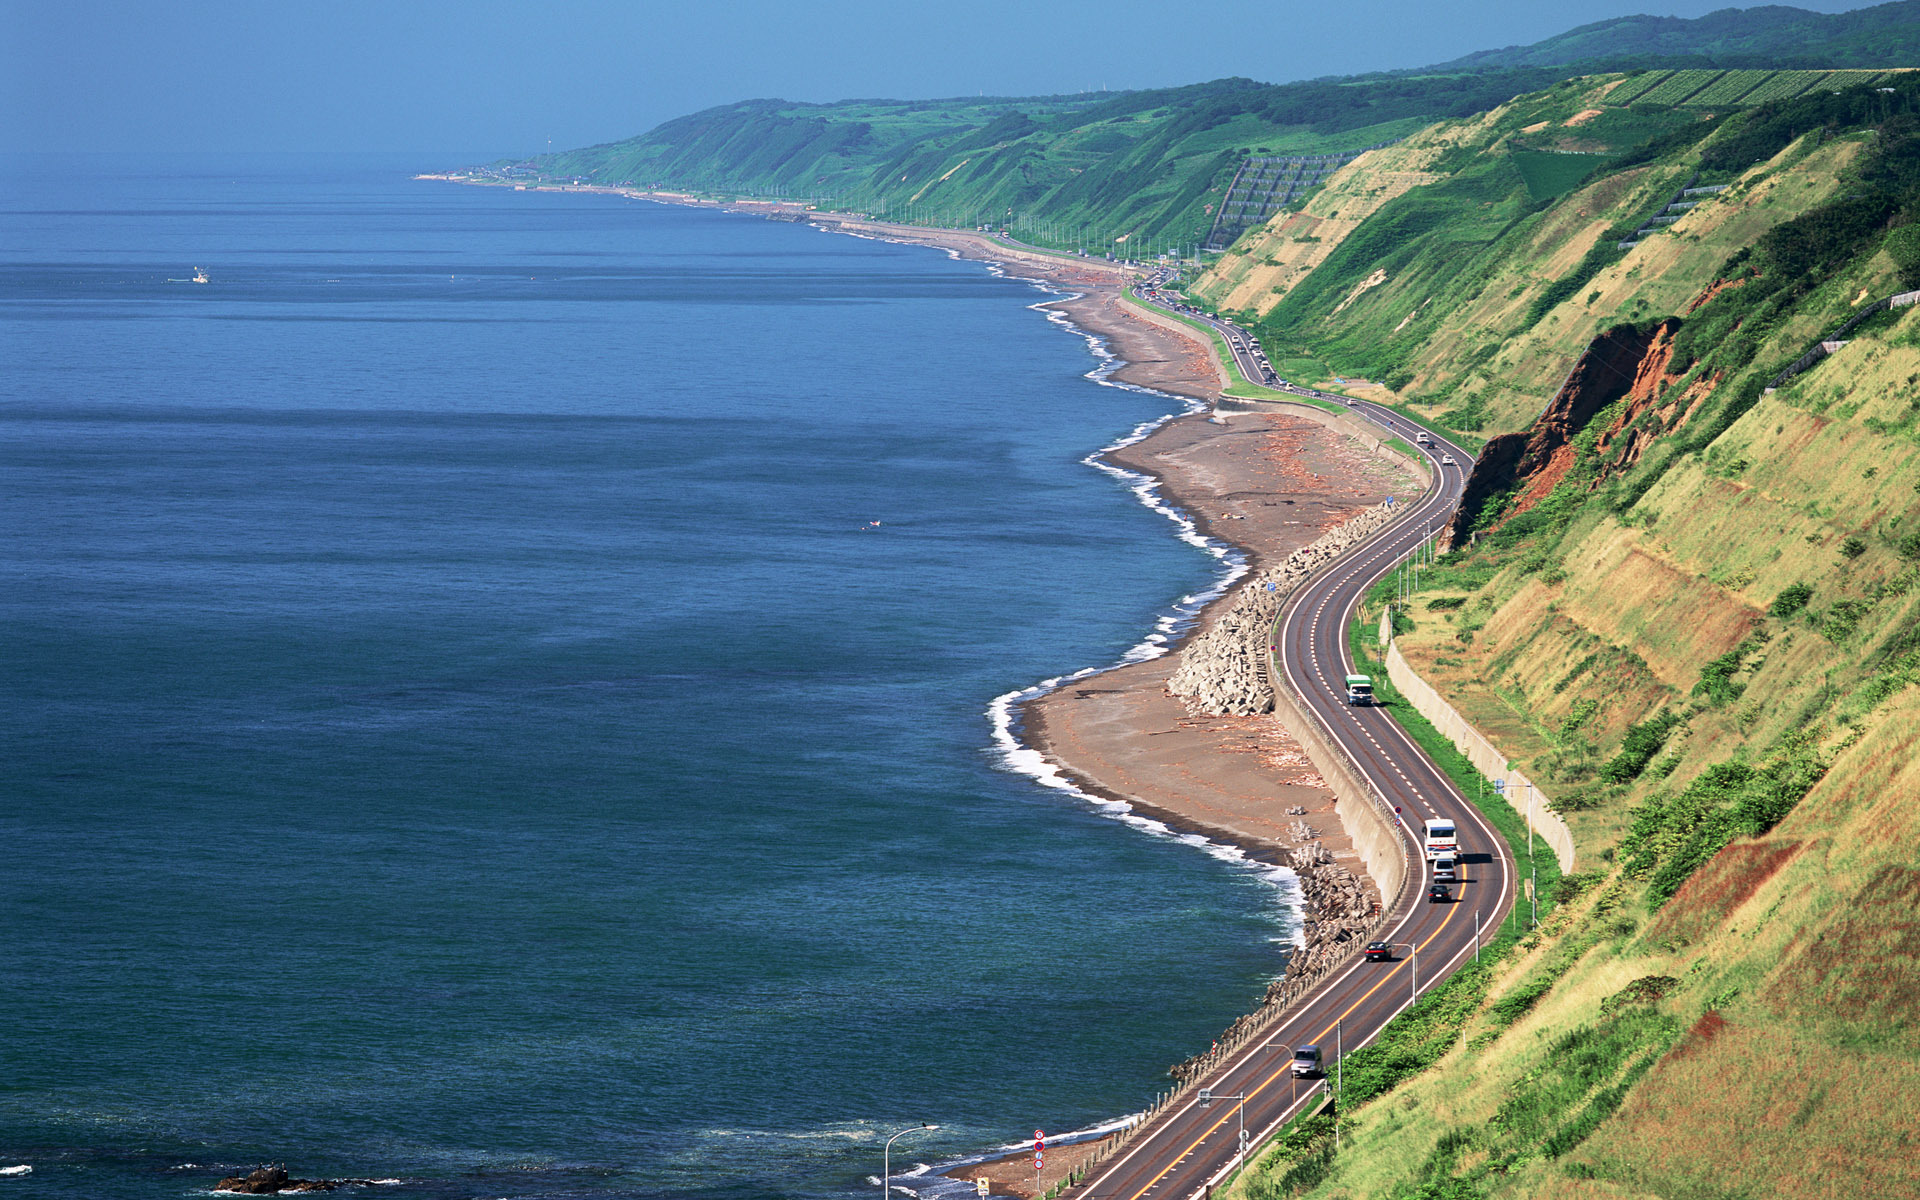 Download mobile wallpaper Sea, Roads, Mountains, Landscape for free.